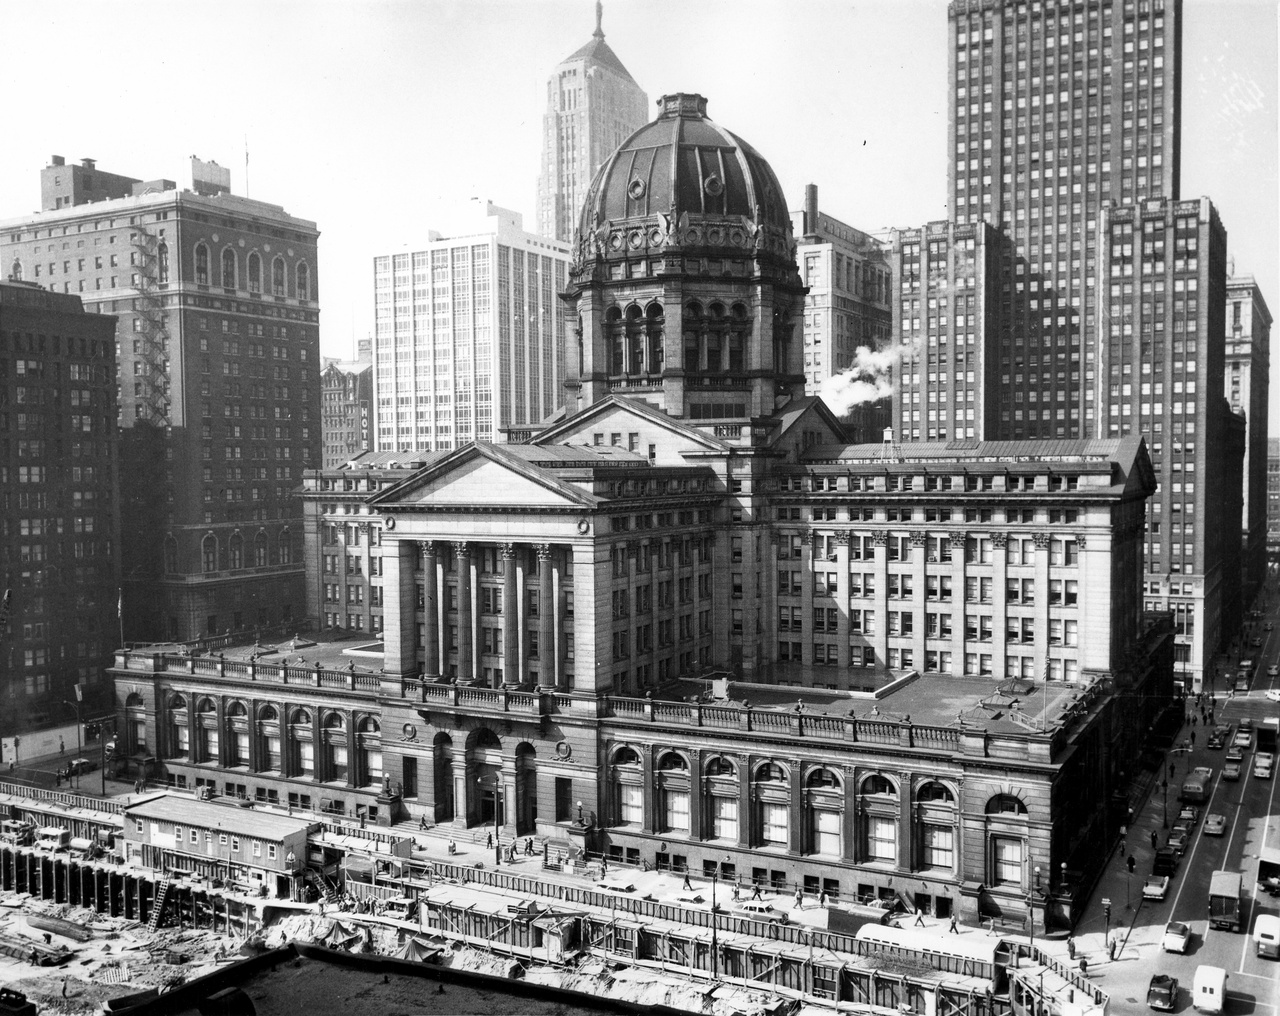 1905 – Federal Court Building, Chicago